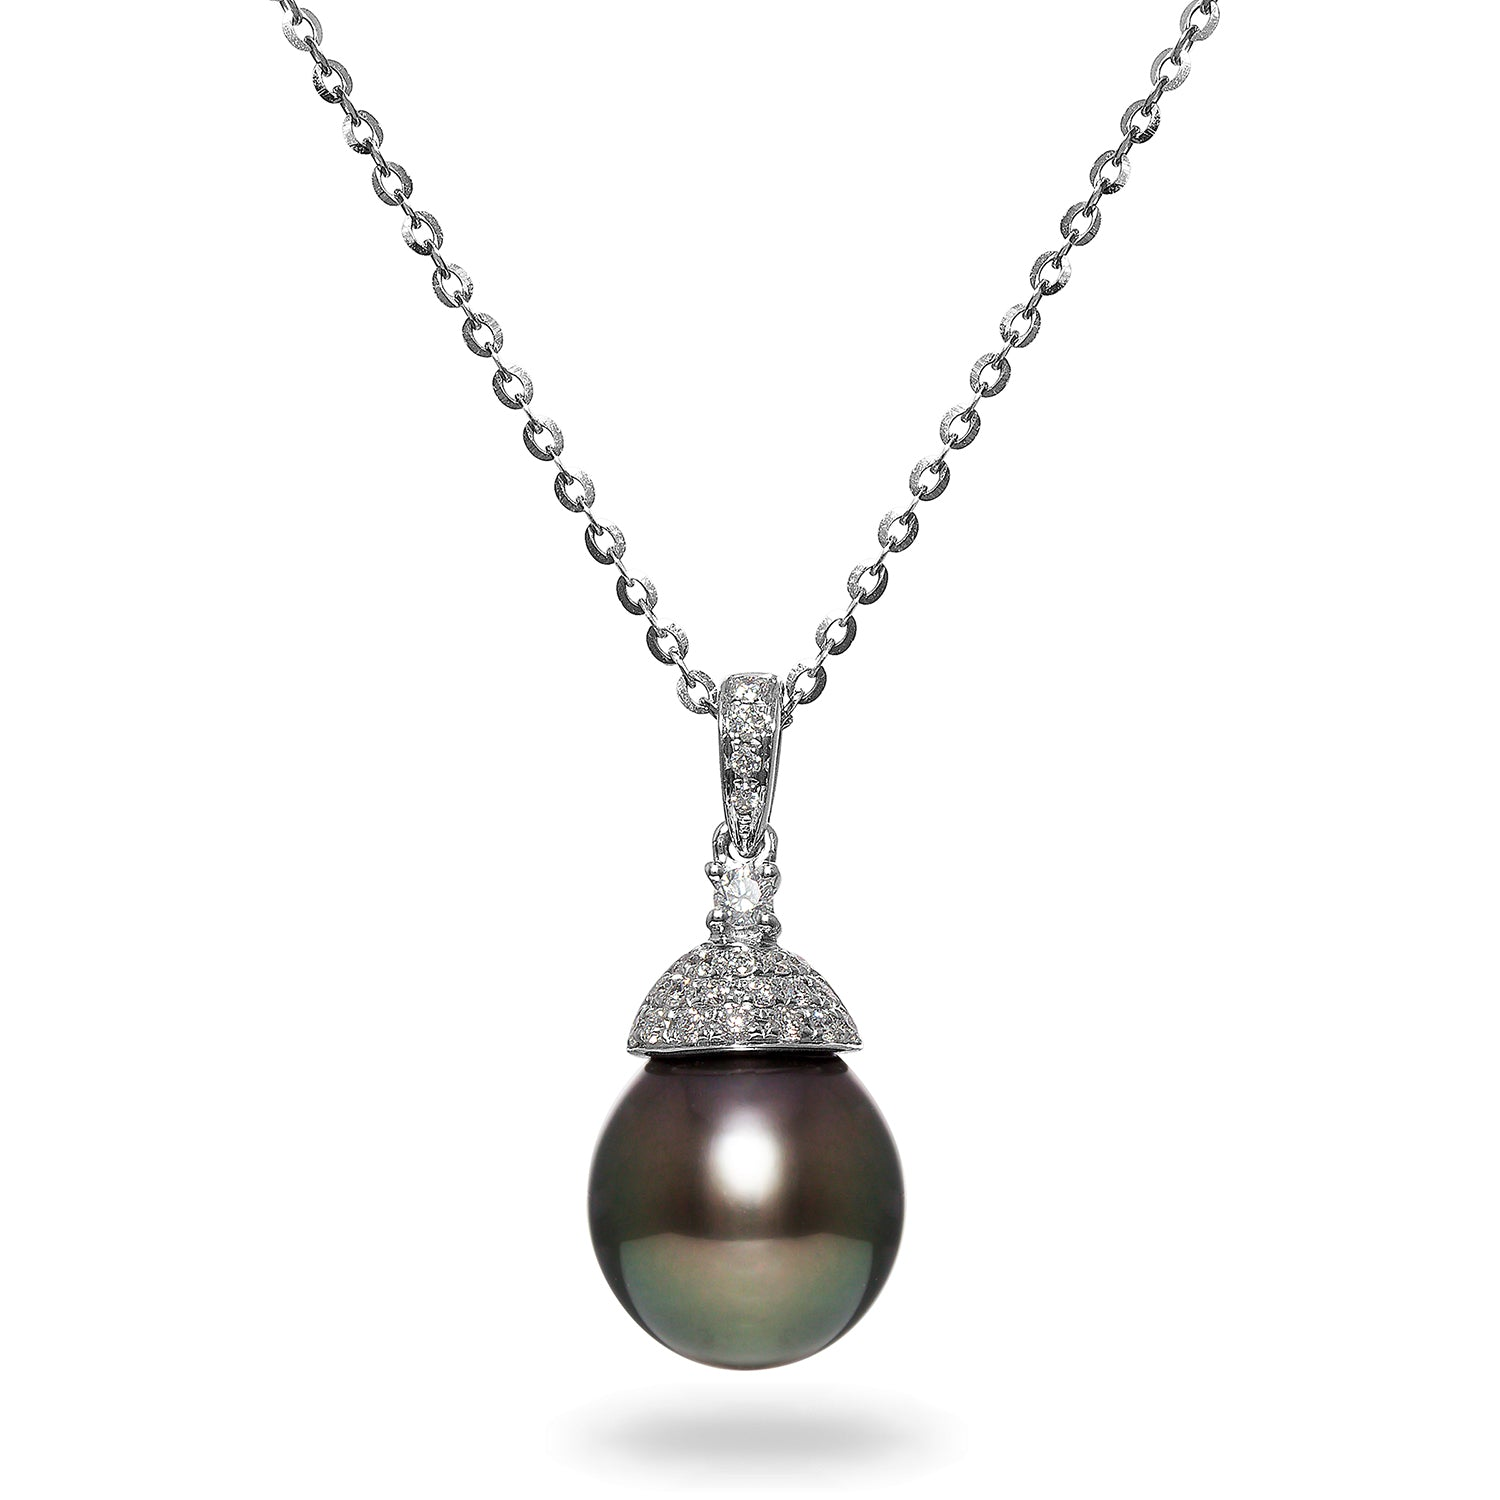 10-11mm Tahitian Cultured Pearl and Diamond Pendant Necklace